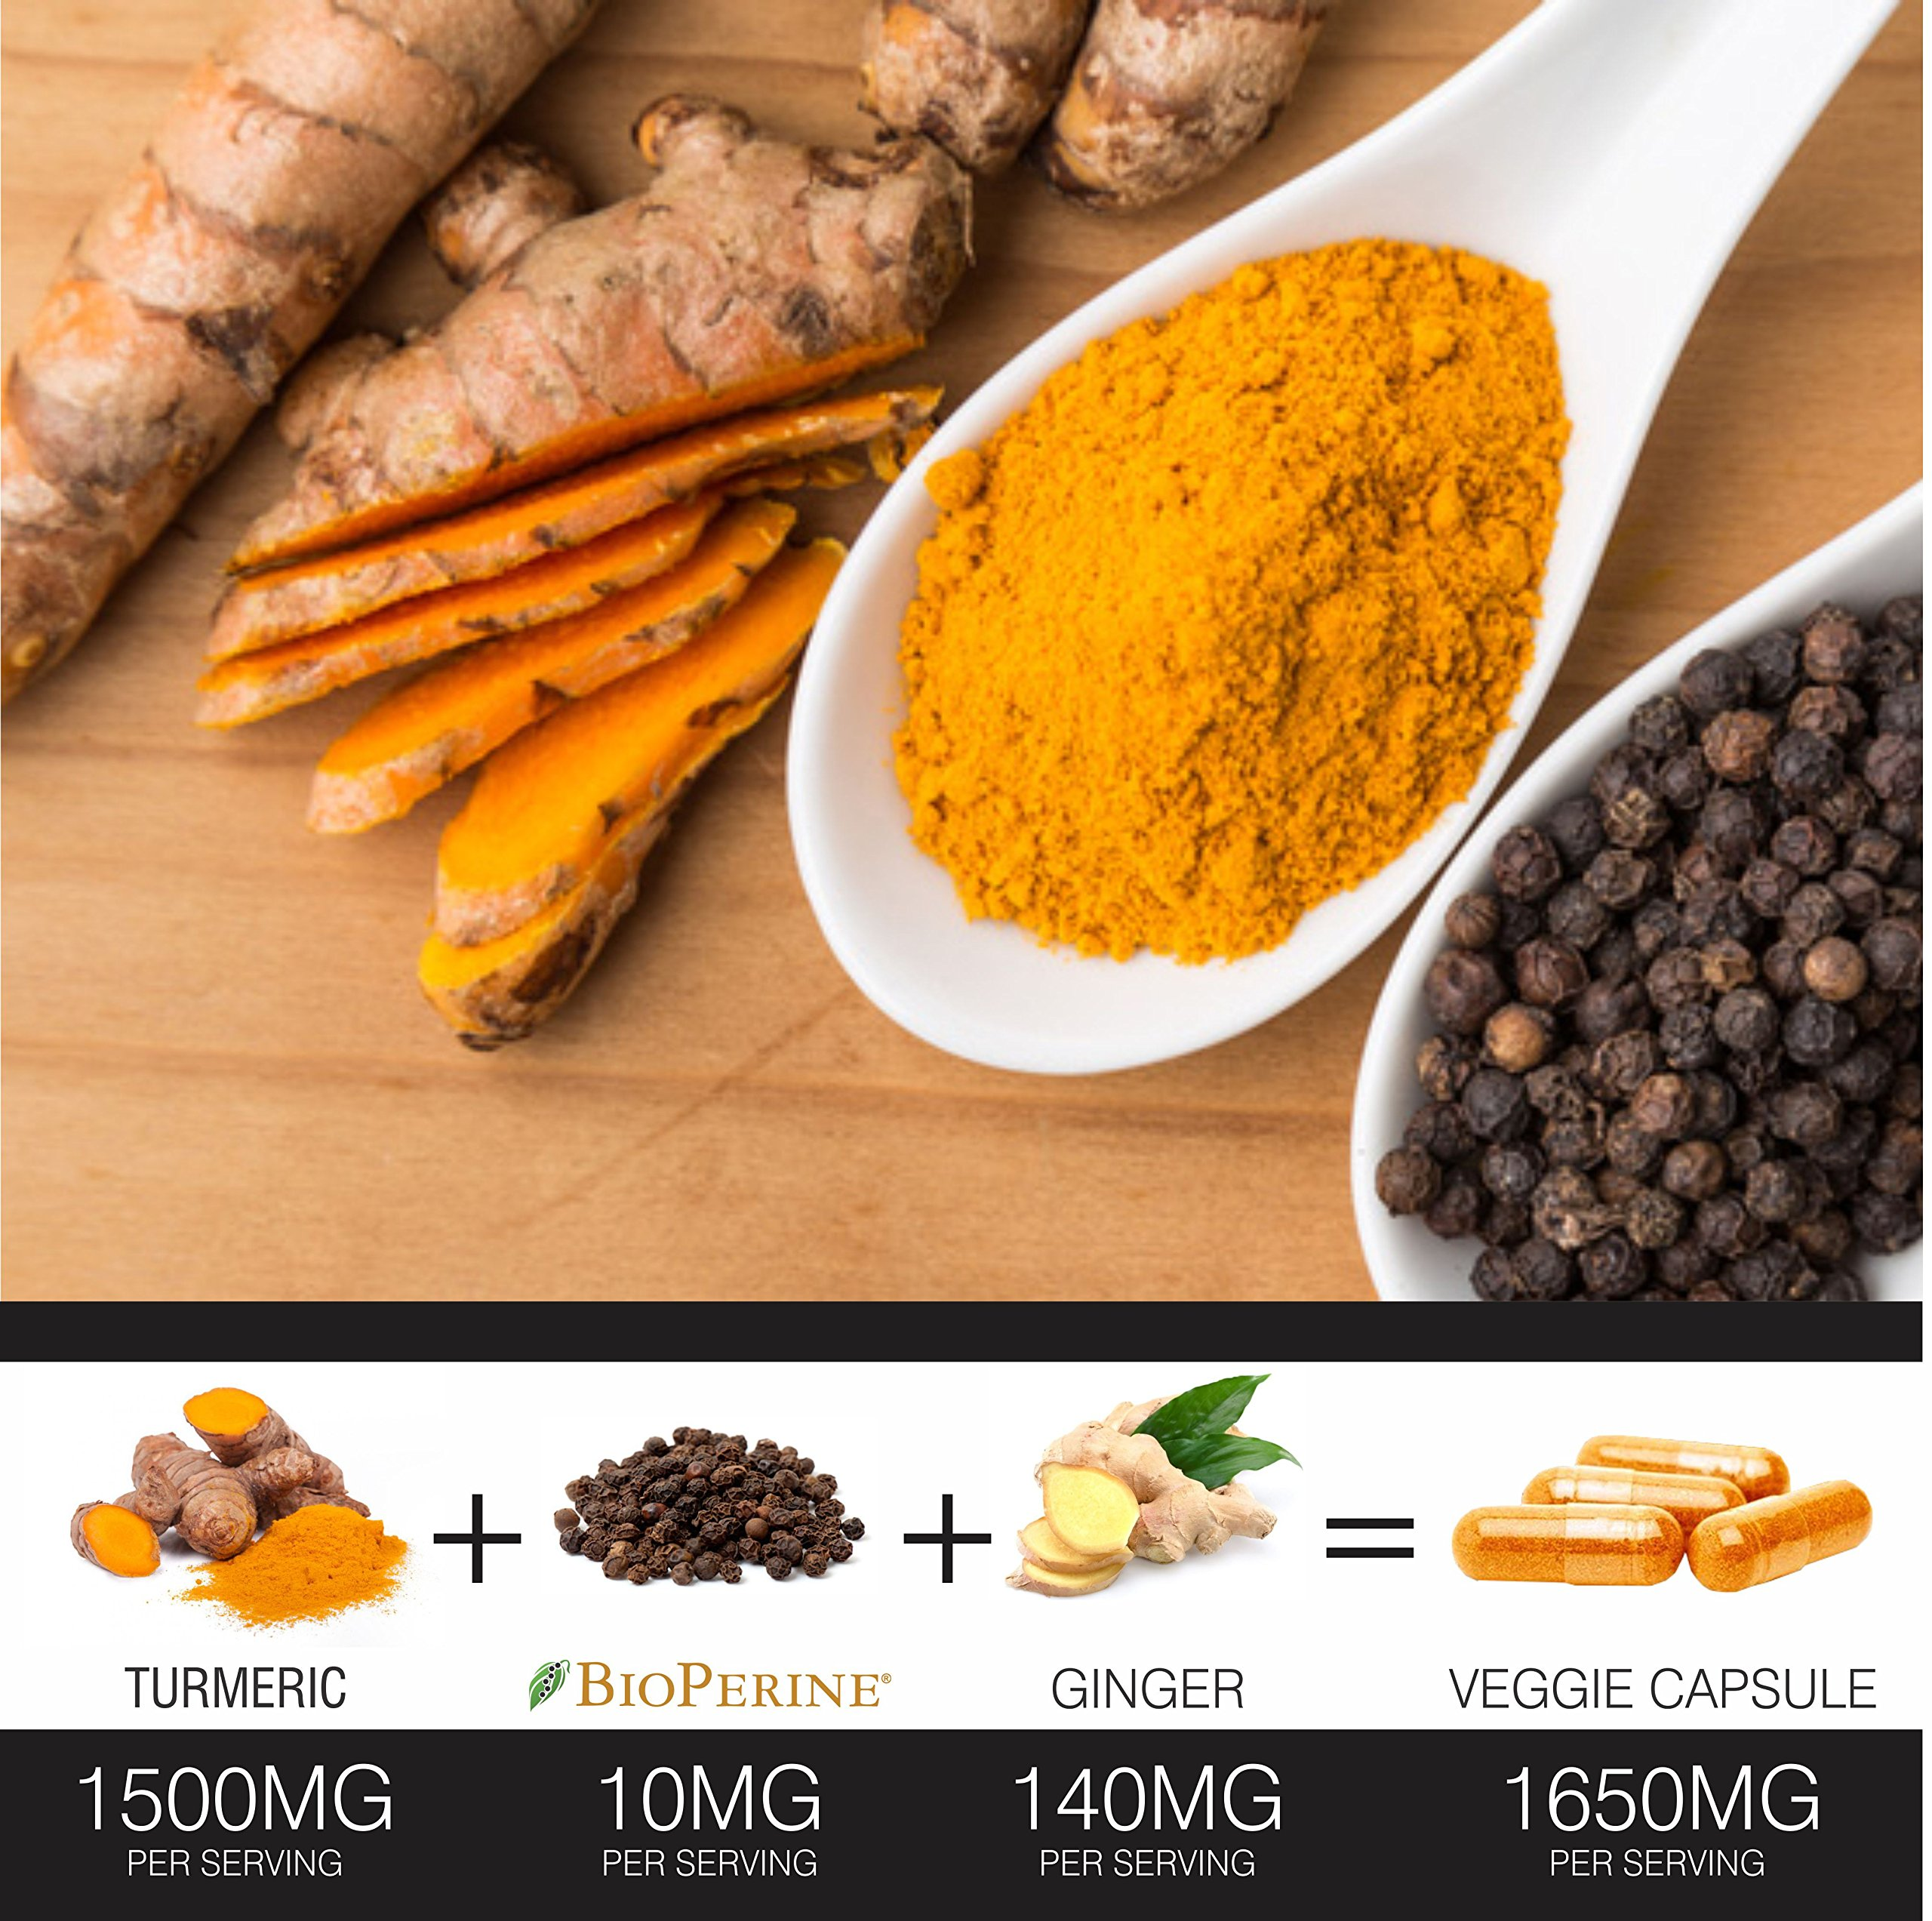 Turmeric Curcumin with BioPerine Black Pepper and Ginger - Made in USA - 120 Vegetarian Capsules for Advanced Absorption, Cardiovascular Health, Joints Support and Anti Aging Supplement (120 Capsules) by FineVine (Image #5)